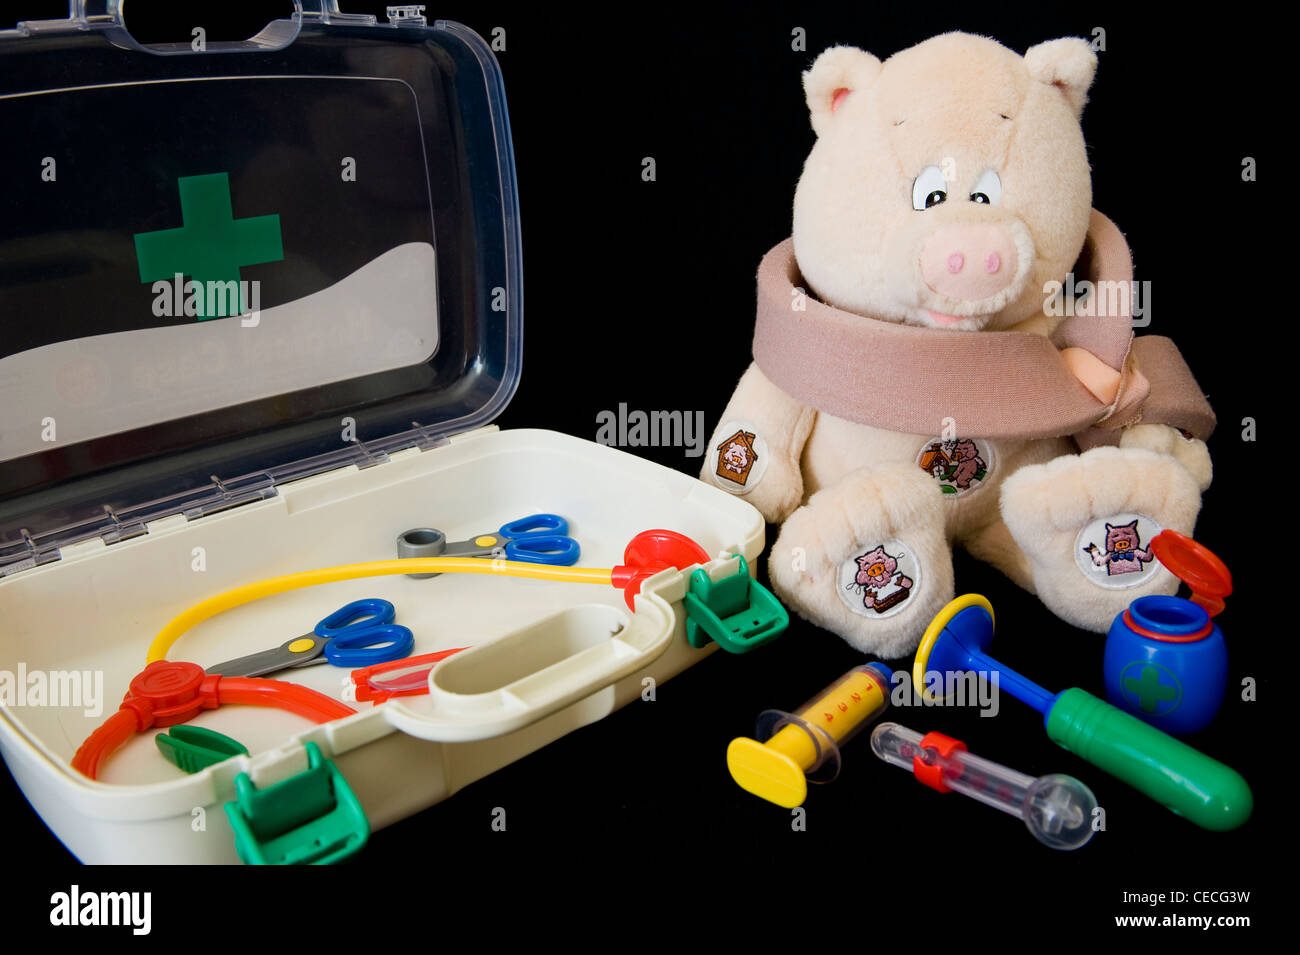 An 'injured'  cuddly toy surrounded by a variety of implements from a child's doctor's kit. - Stock Image